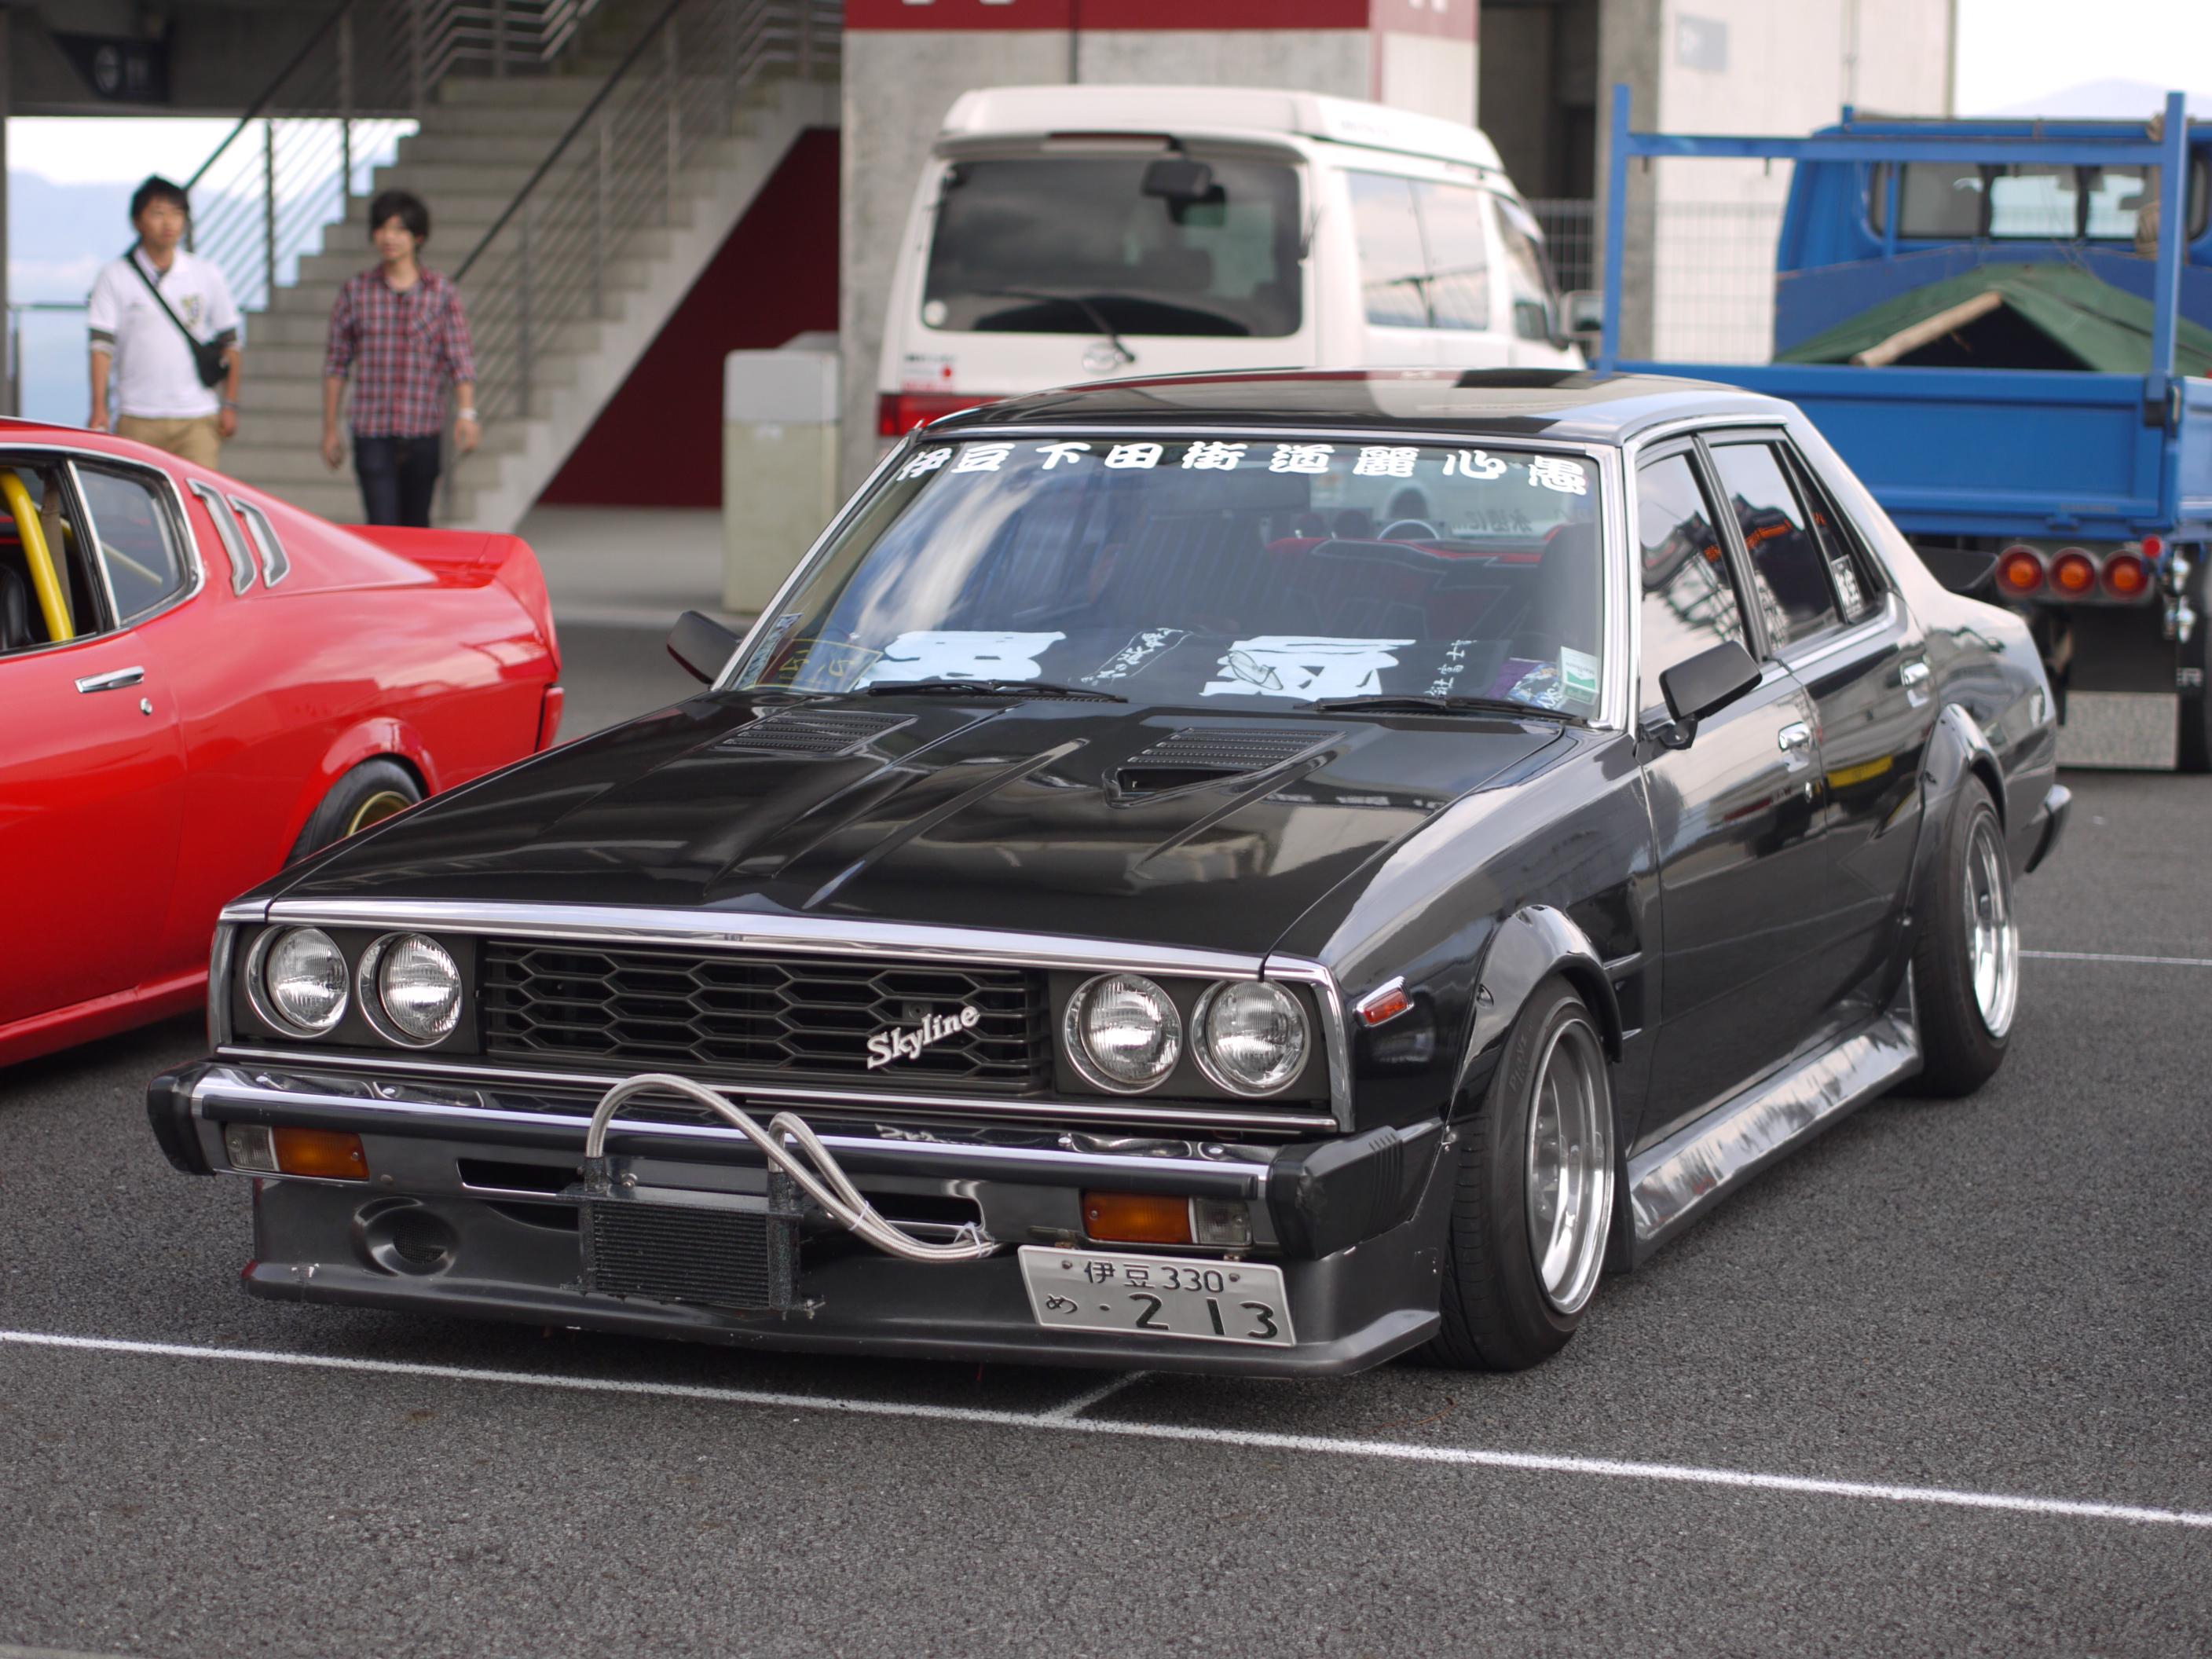 Yonmeri skyline kenmeri and yonmeri skylines pinterest explore nissan skyline car pictures and more vanachro Gallery